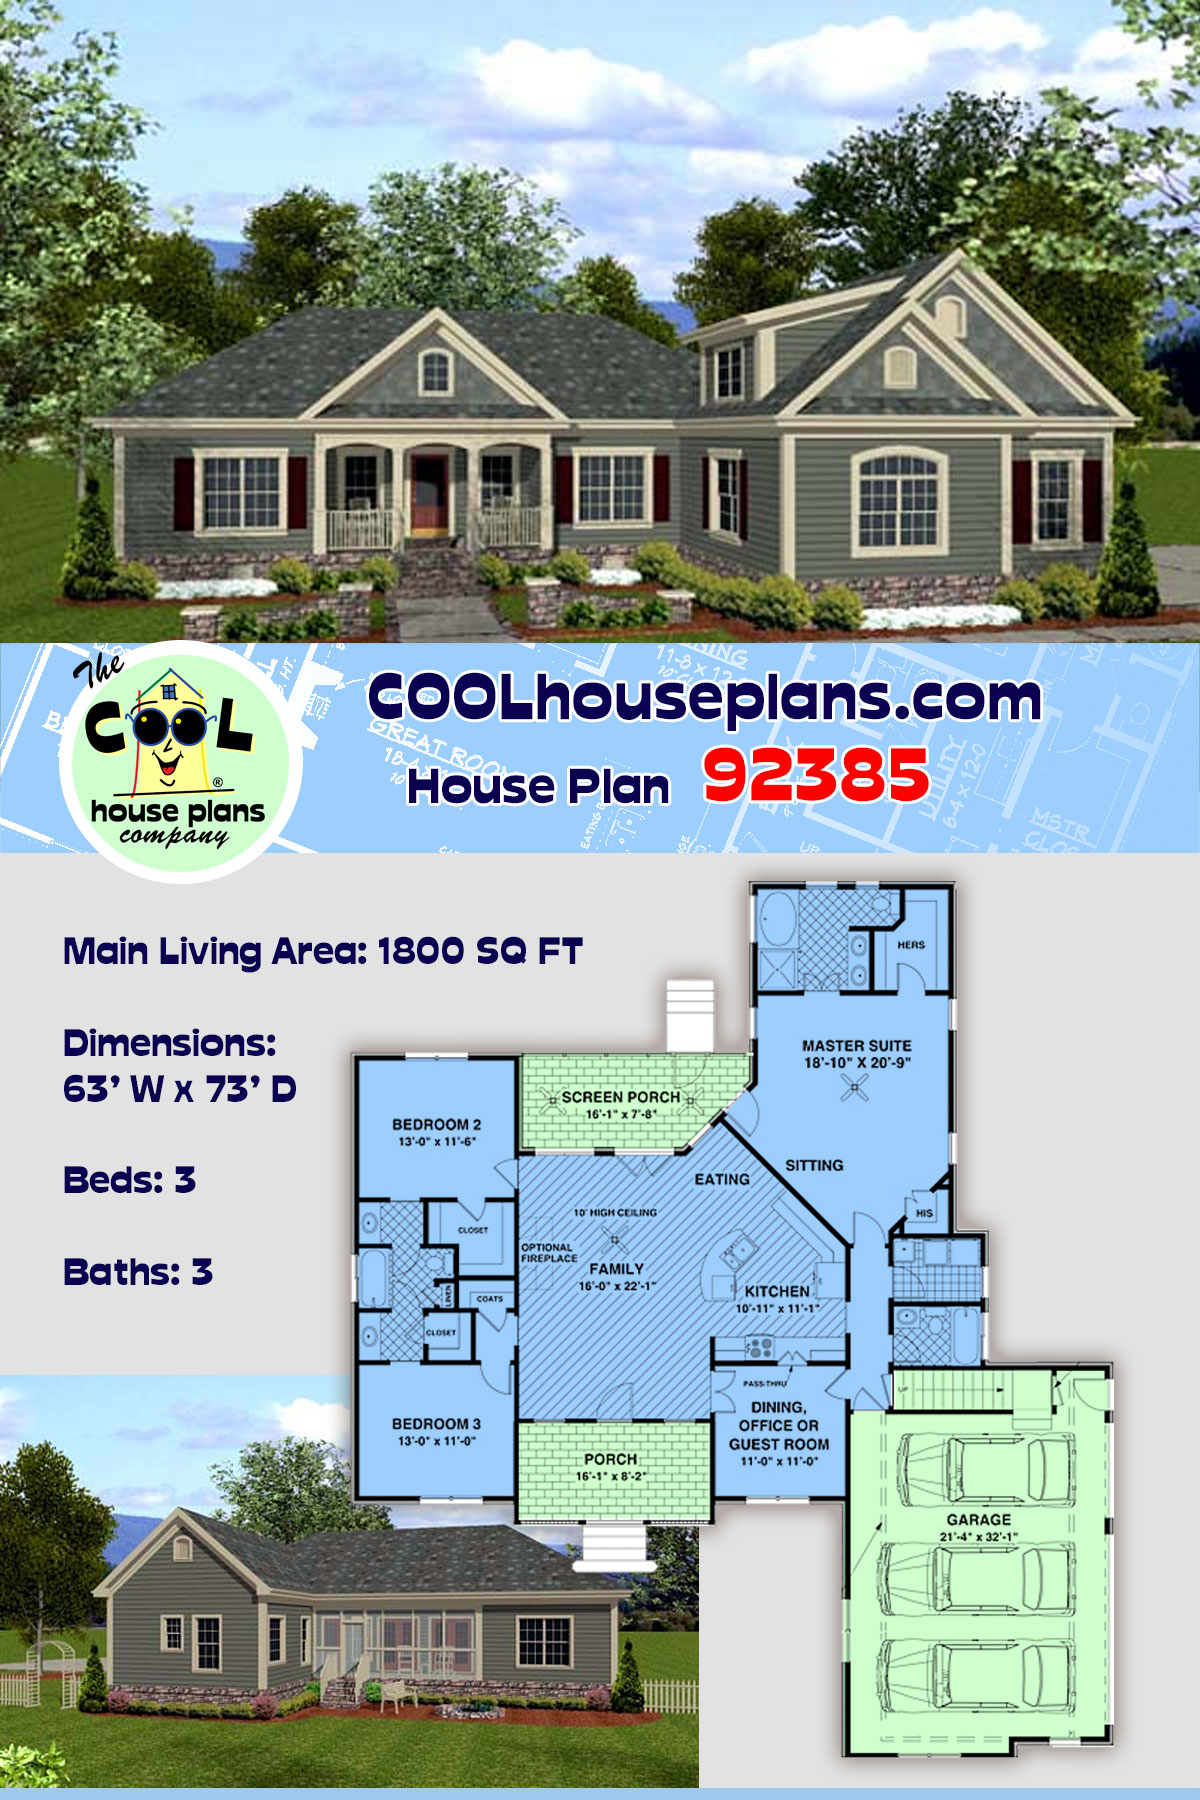 Country, Craftsman House Plan 92385 with 3 Beds, 3 Baths, 3 Car Garage